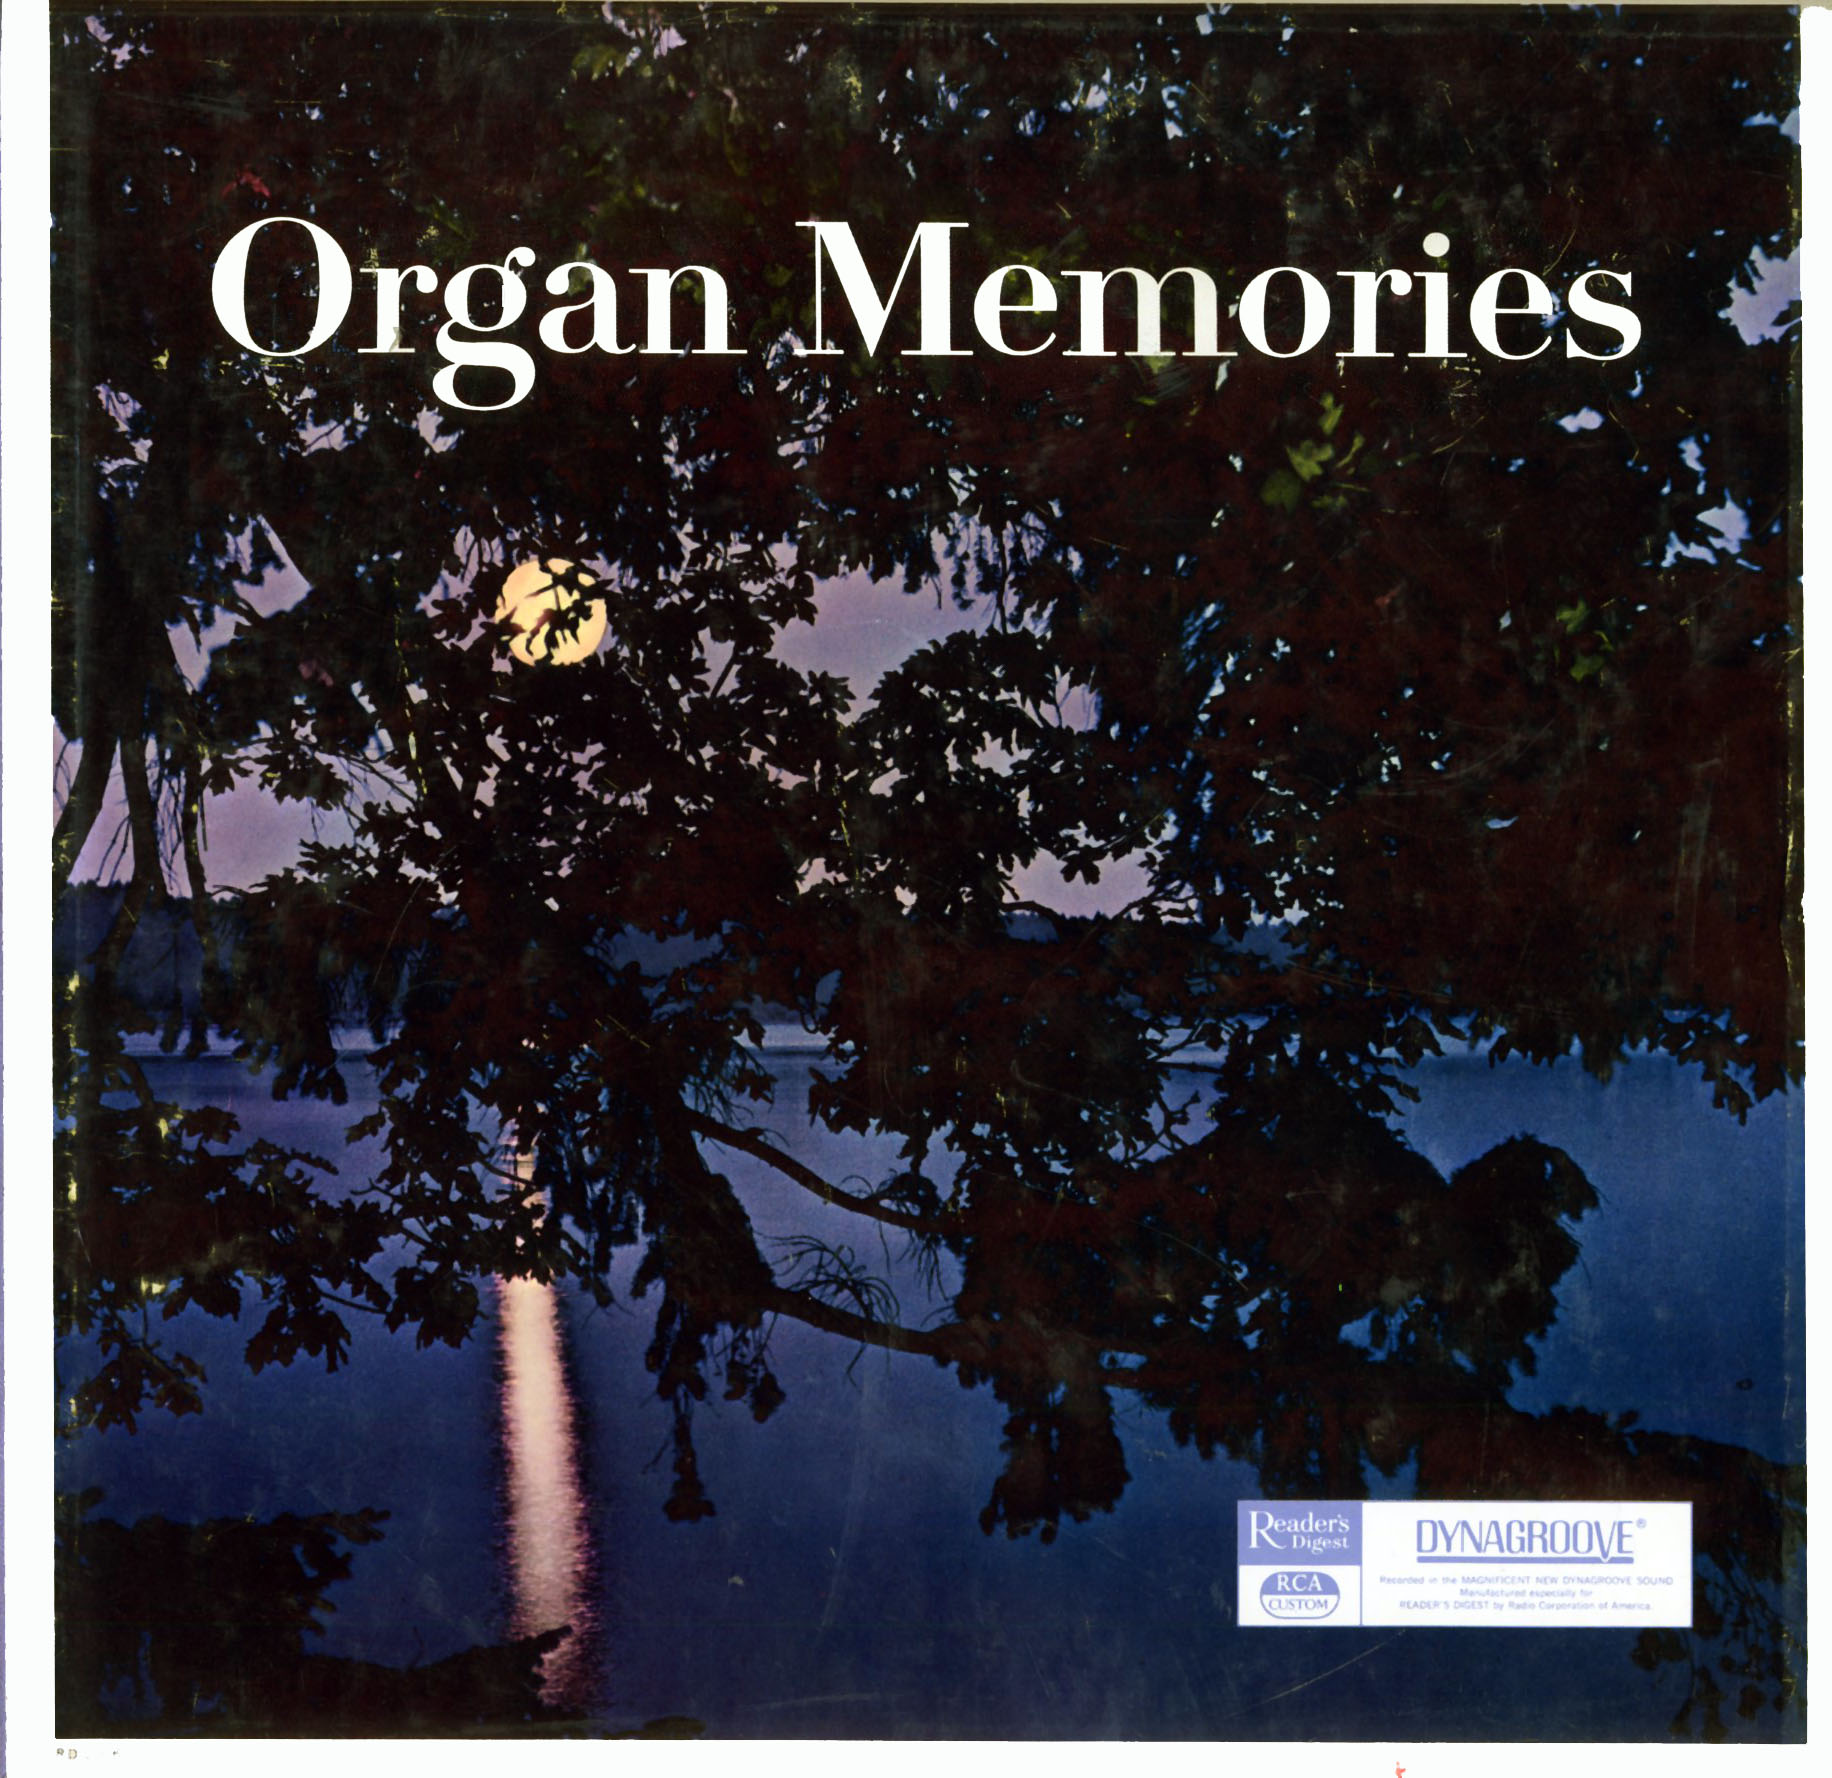 RD23 - Organ Memories on CD